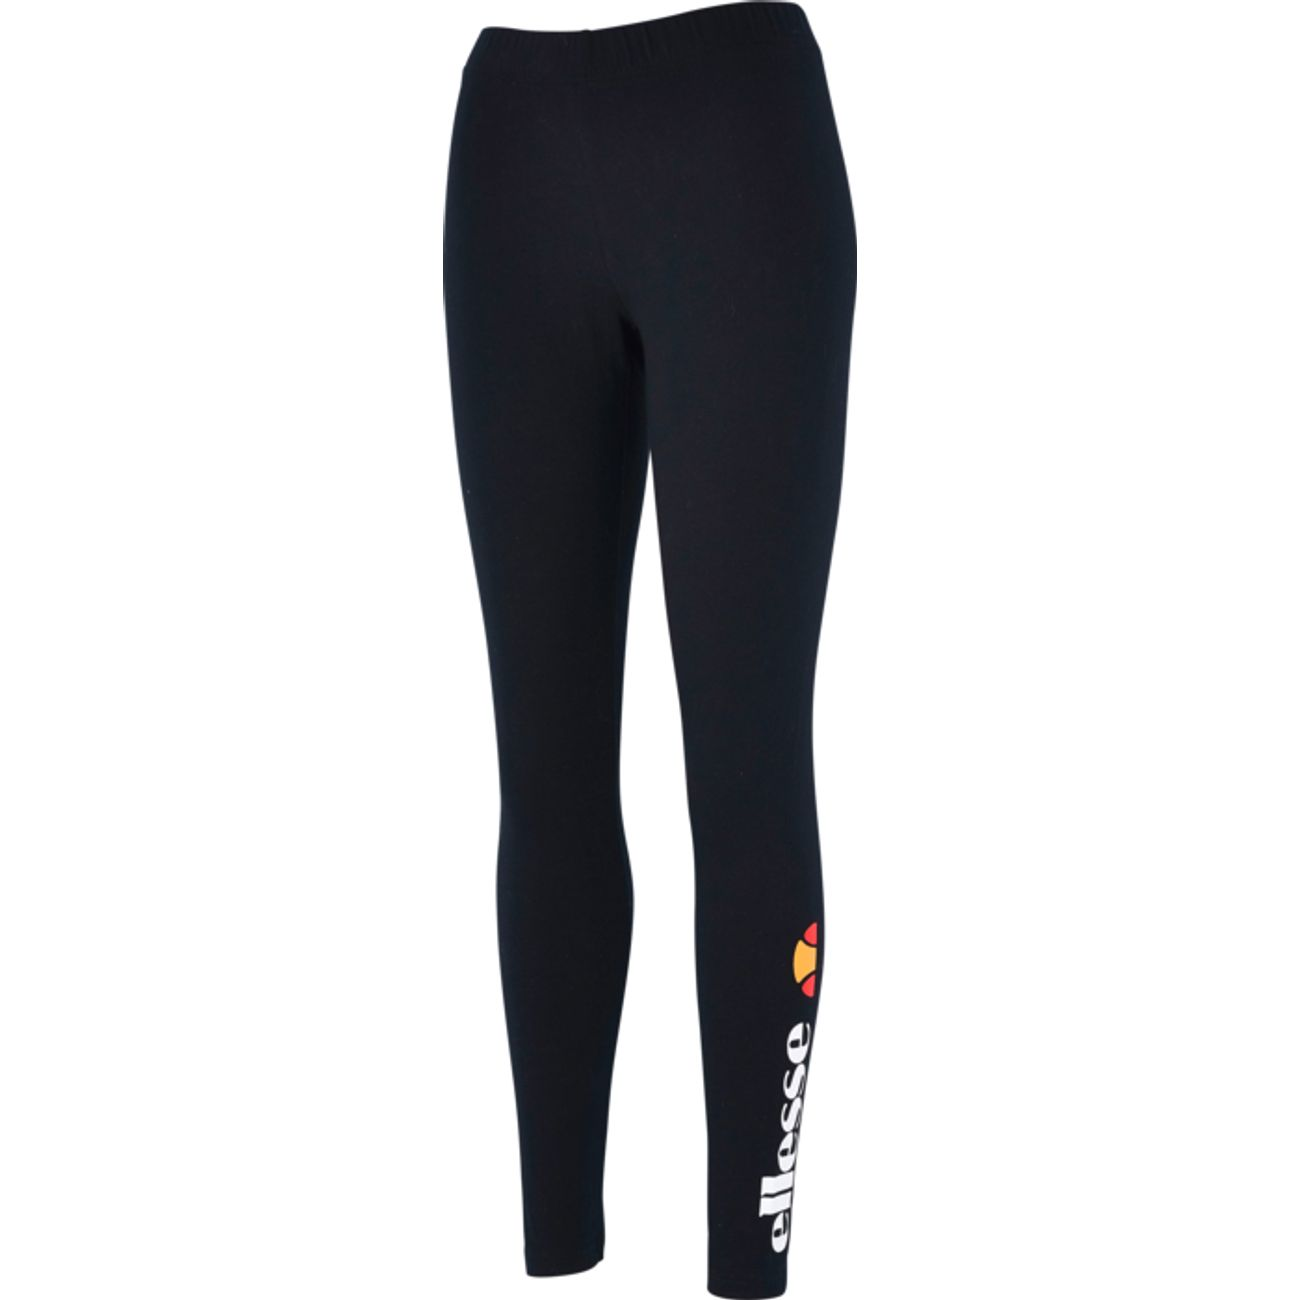 LEGGING Multisport fille ELLESSE GALAXY LEGGING